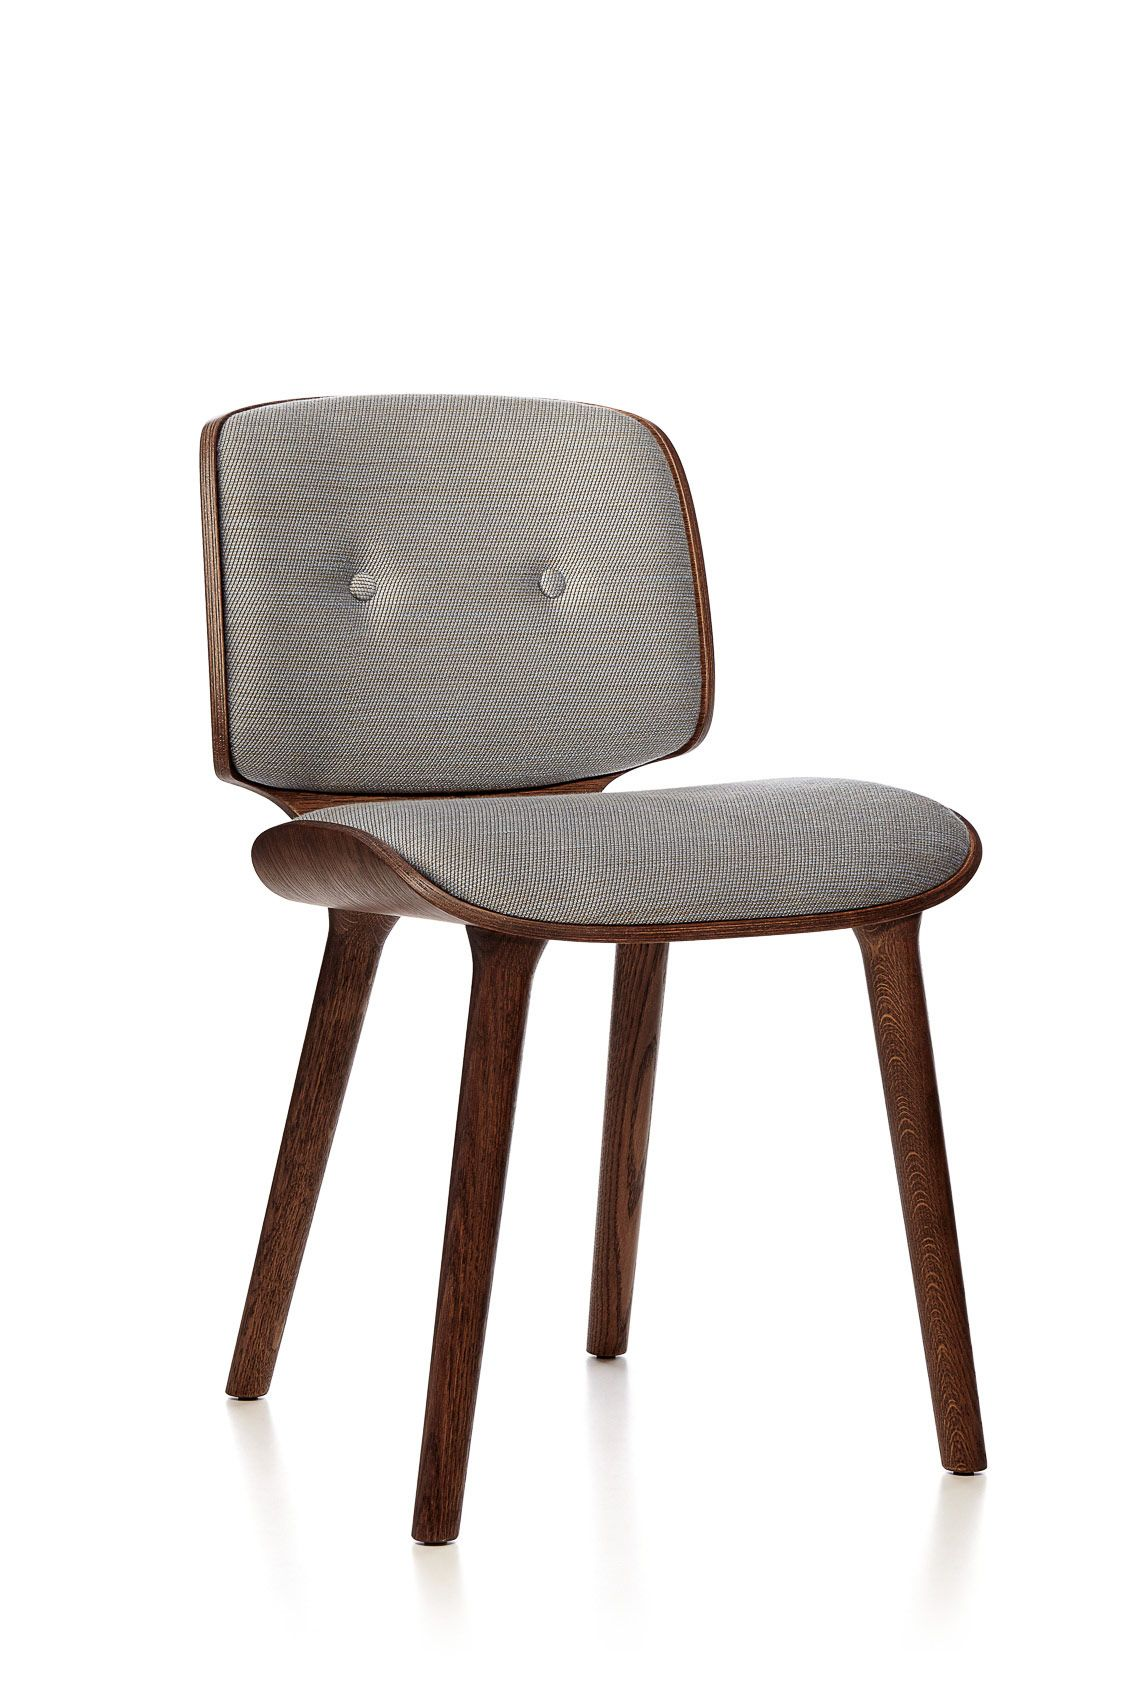 nut-dining-chair-037_last-forweb-moooi